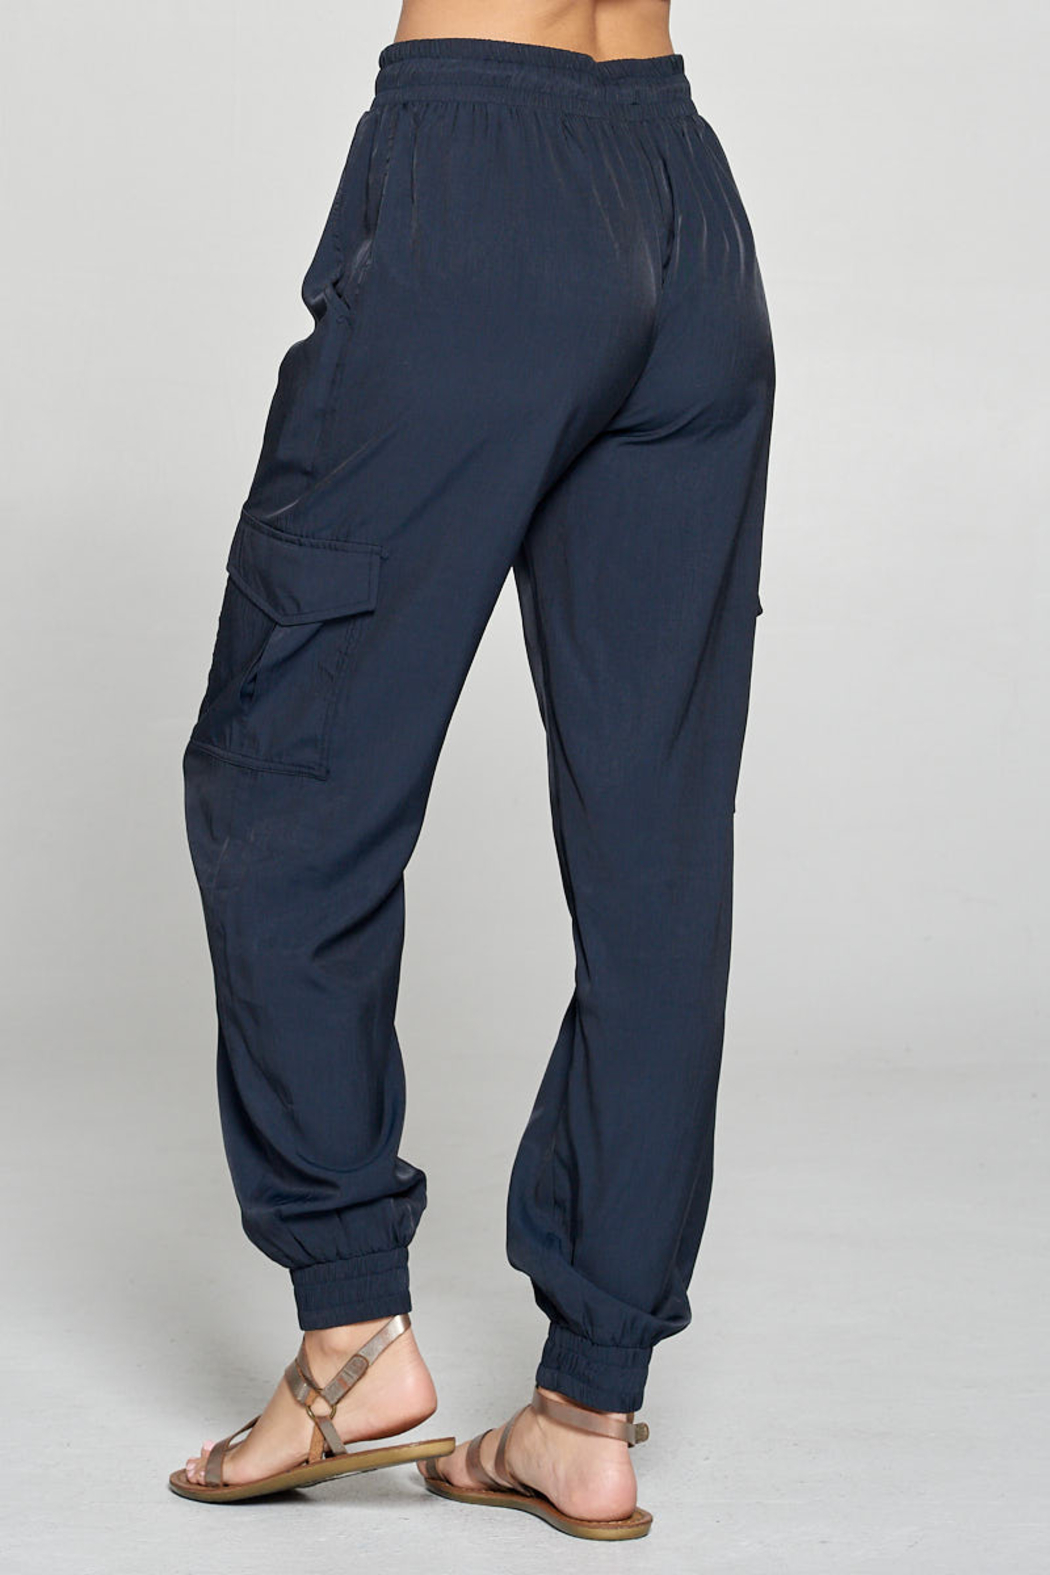 Pinch SILK JOGGERS - Side Cropped Image